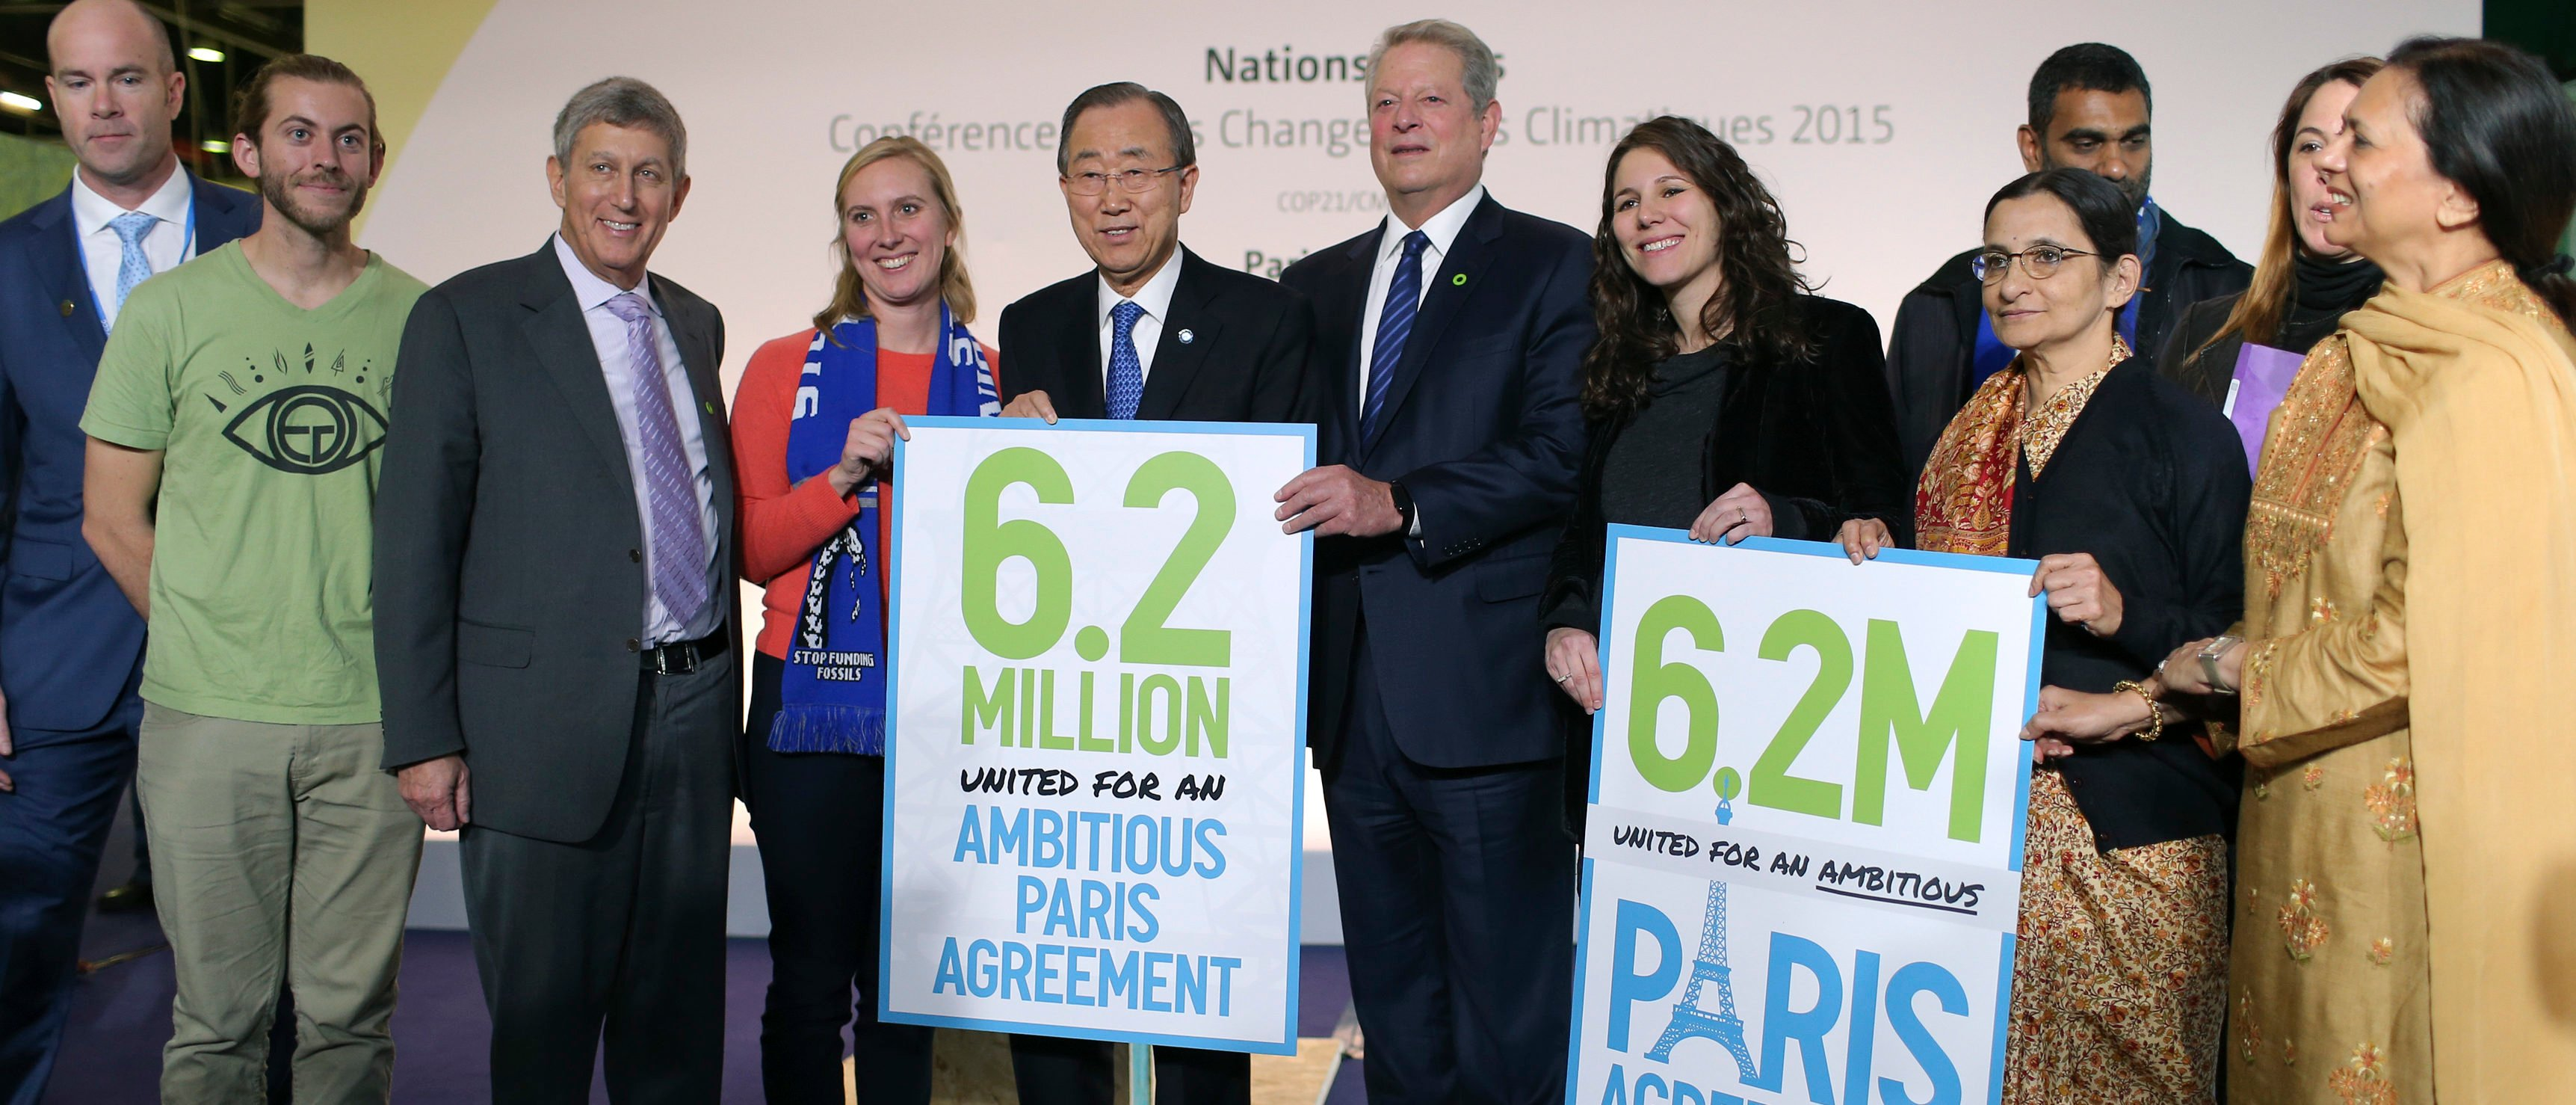 United Nations Secretary-General Ban Ki-moon (5thL) and Al Gore (6thL), former U.S. Vice President and Climate Reality Project Chairman, pose with representative of NGO's, during the World Climate Change Conference 2015 (COP21) at Le Bourget, near Paris, France, December 10, 2015. REUTERS/Stephane Mahe - LR1EBCA10XLBW